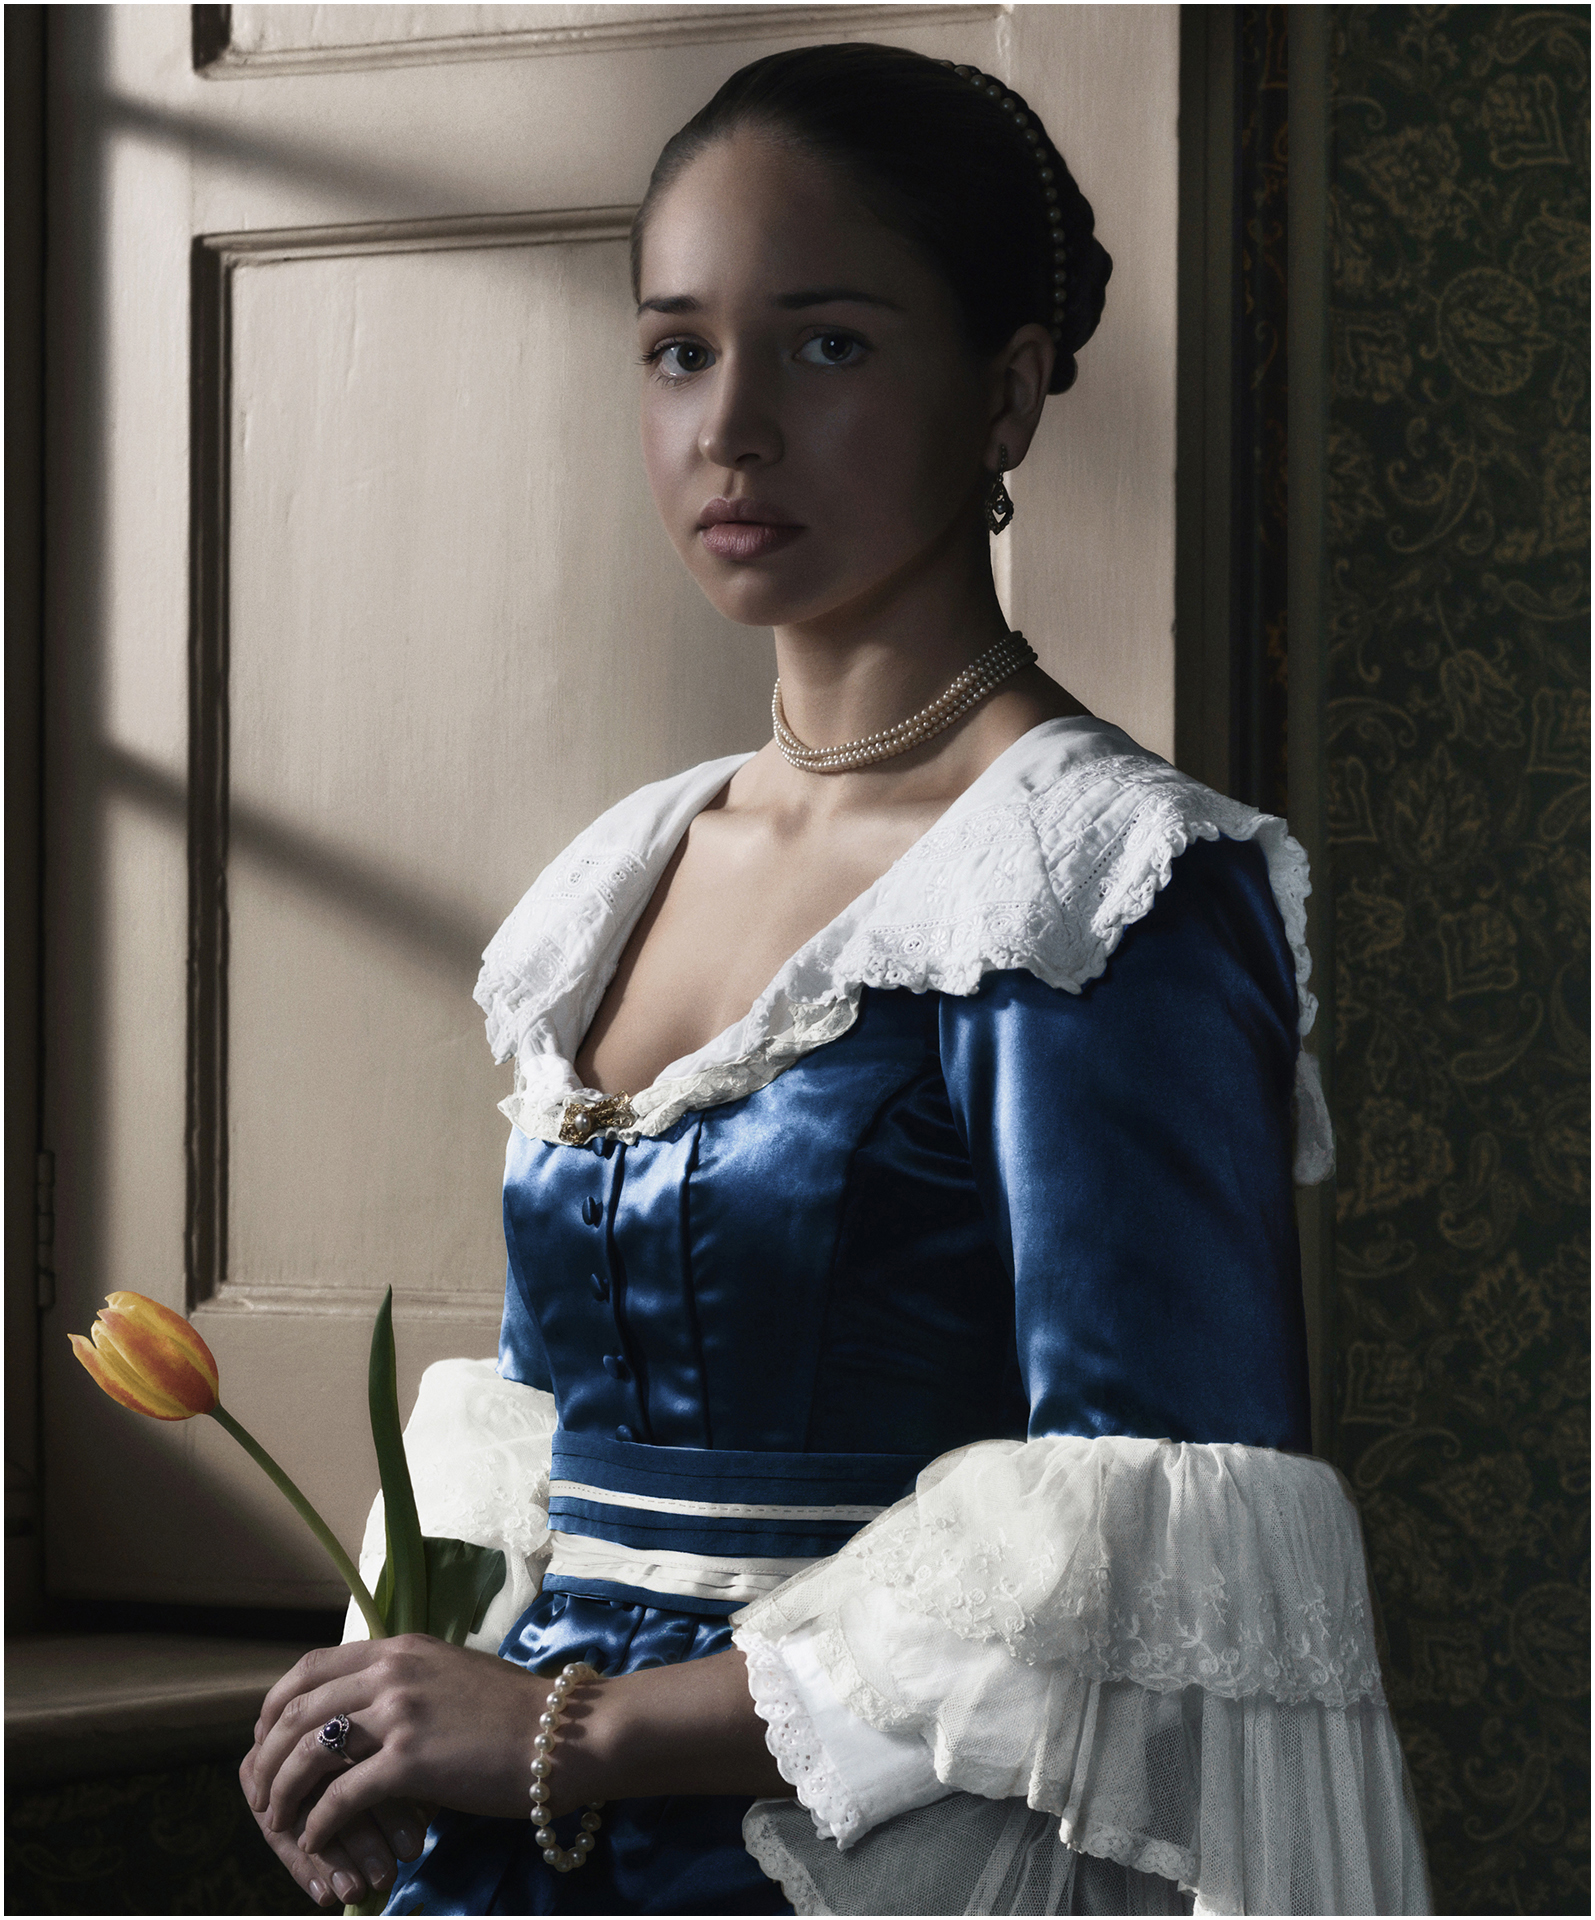 WORKING-WITH-LIGHT: Tulip Fever